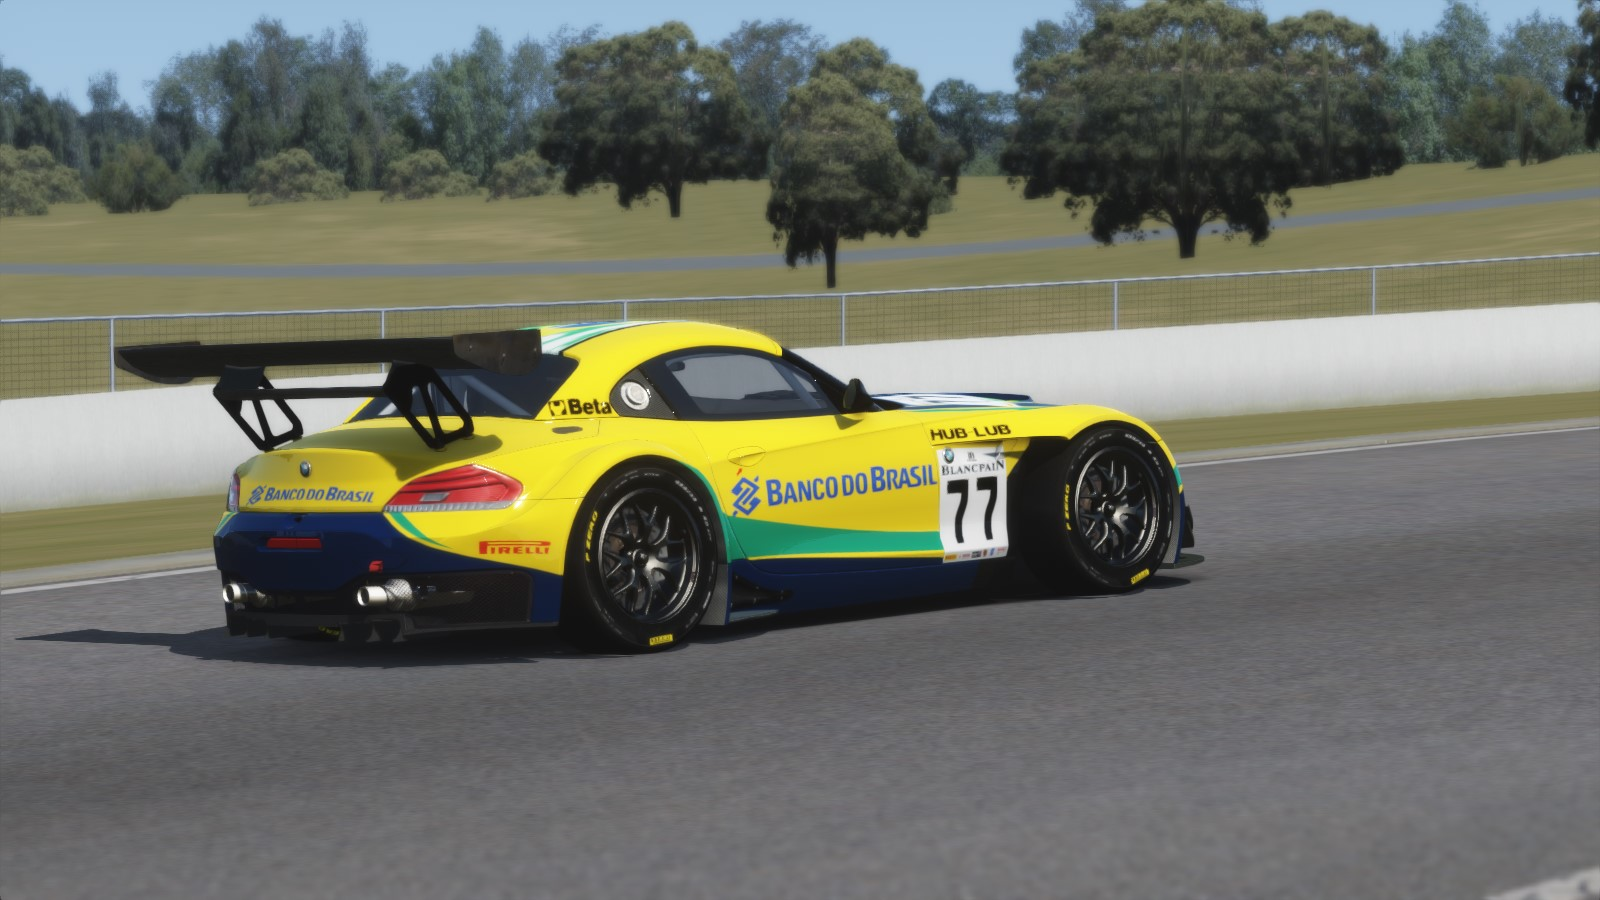 Screenshot_bmw_z4_gt3_barbagallo_12-4-115-2-46-4.jpg